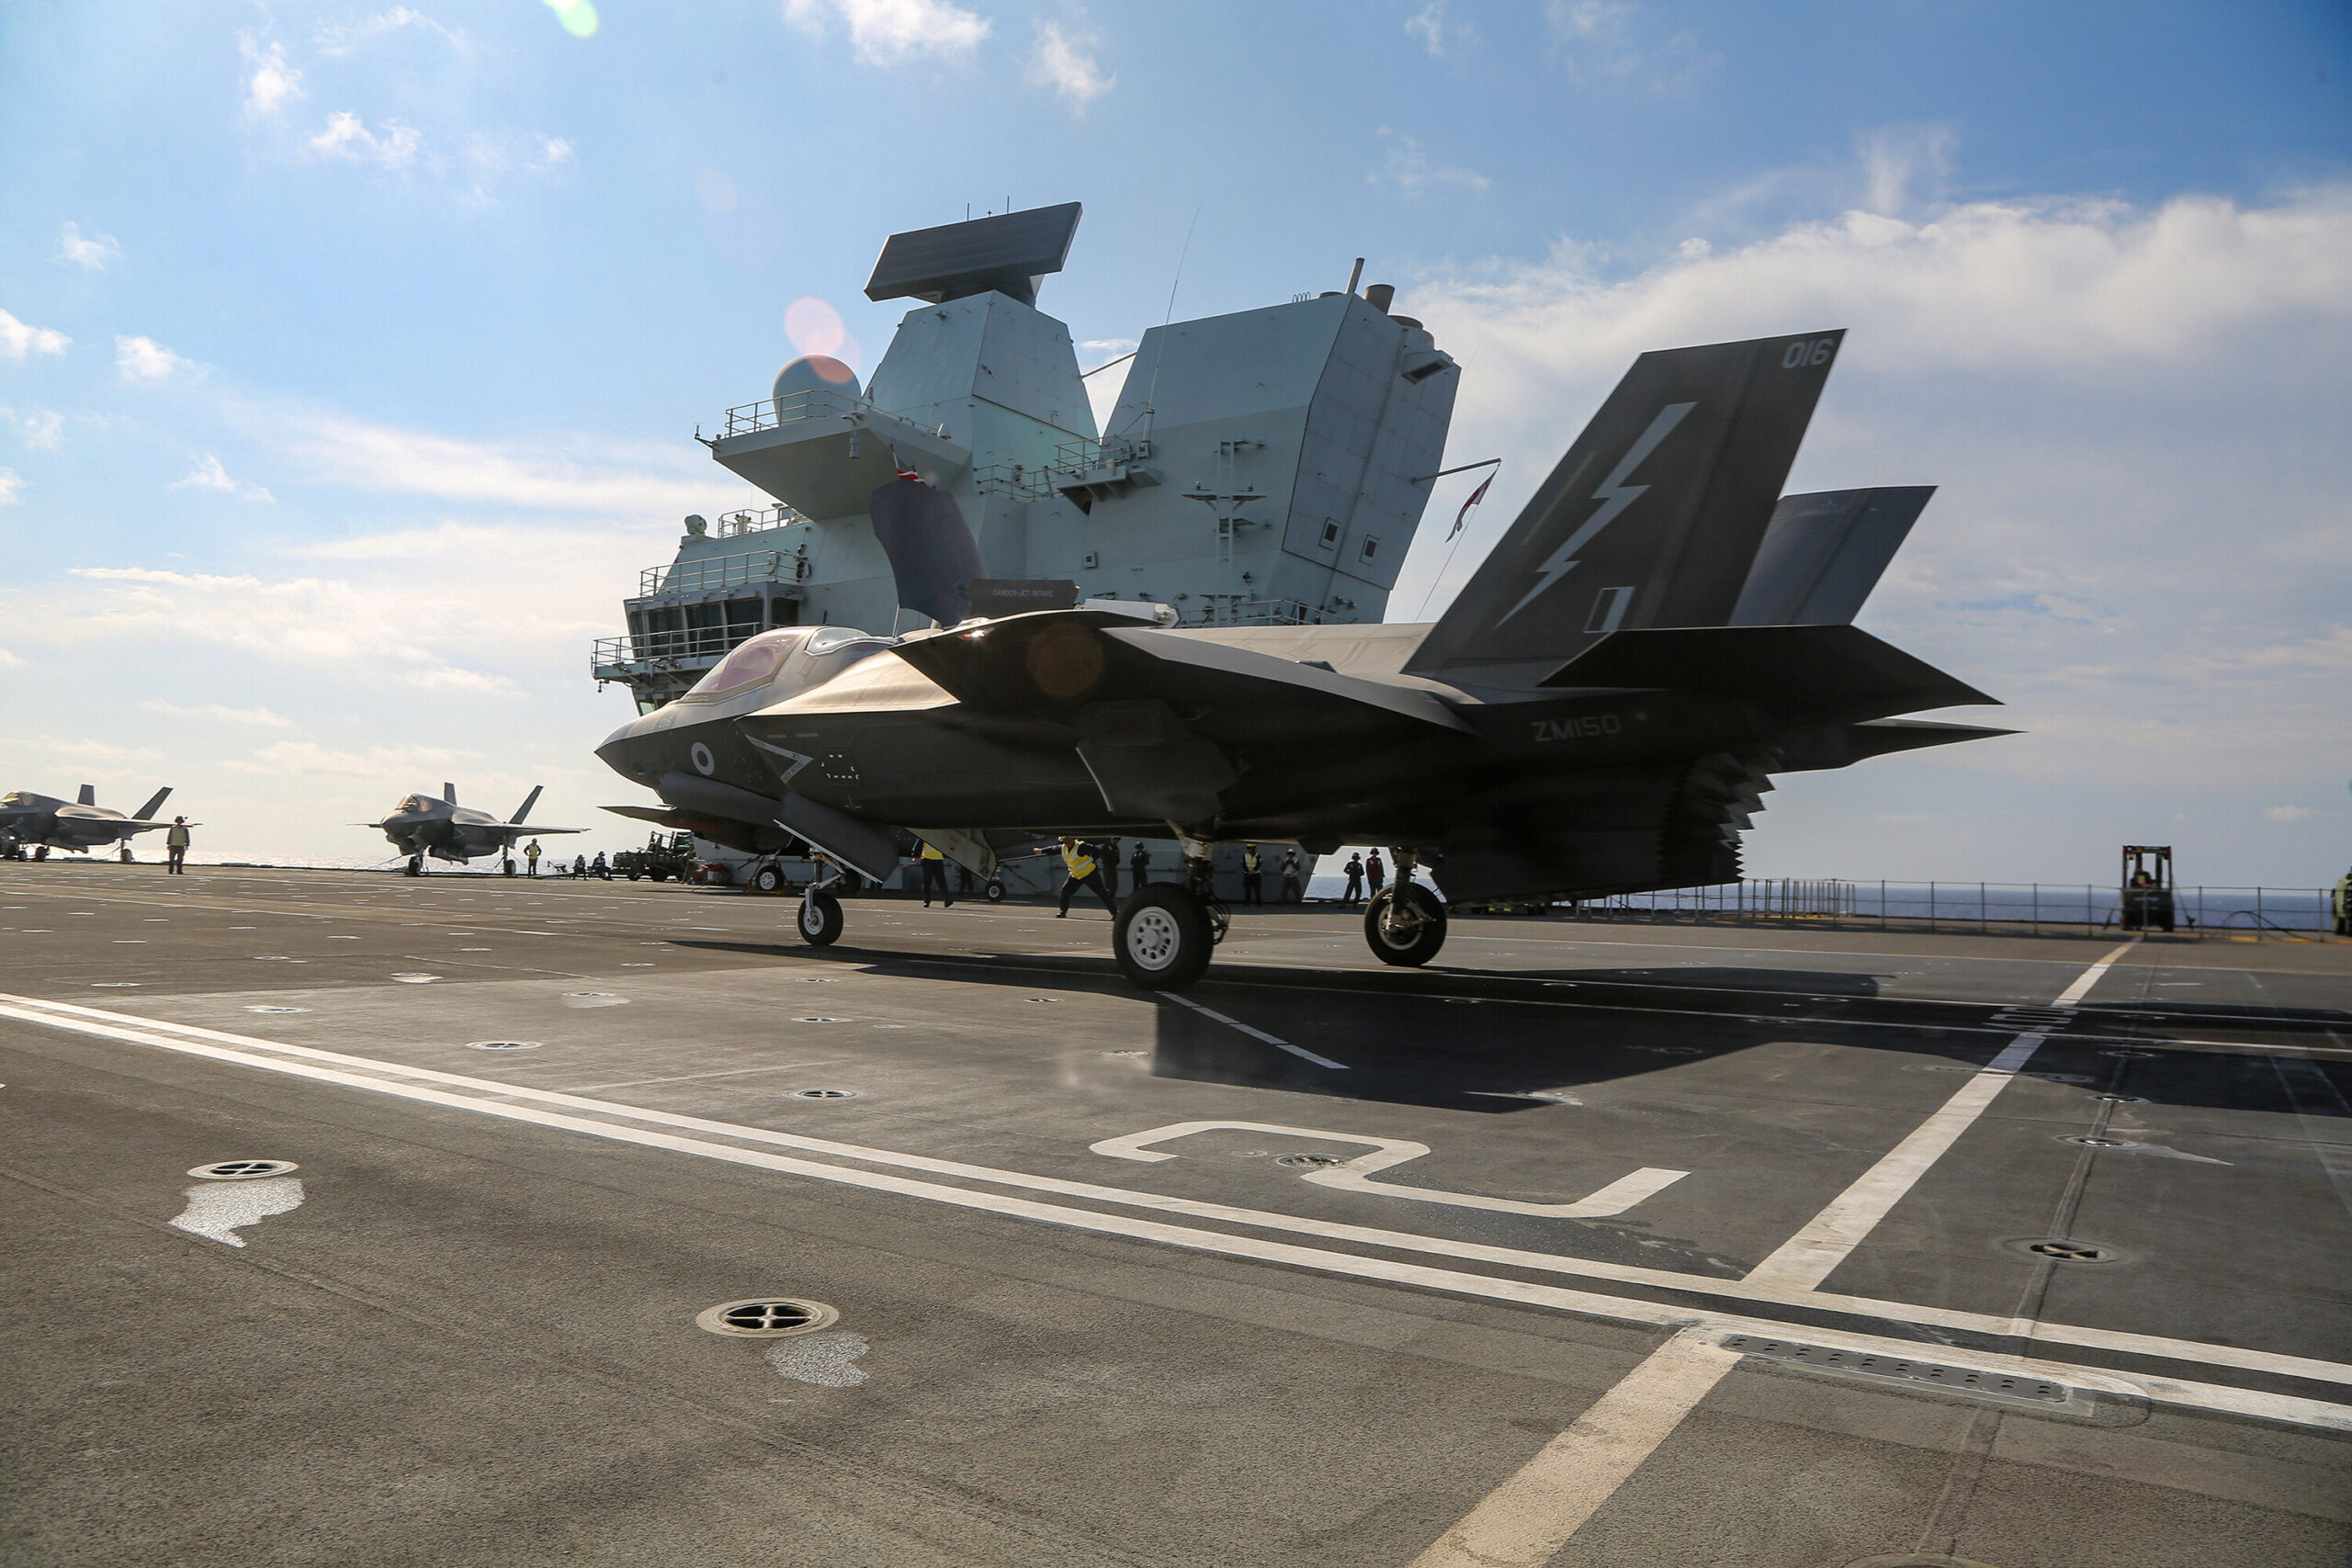 <i>1st Lt. Zachary Bodner</i><br/>US Marine Fighter Attack Squadron 211 conducts flight deck operations onboard the Royal Navy aircraft carrier HMS Queen Elizabeth in the South China Sea on July 27.